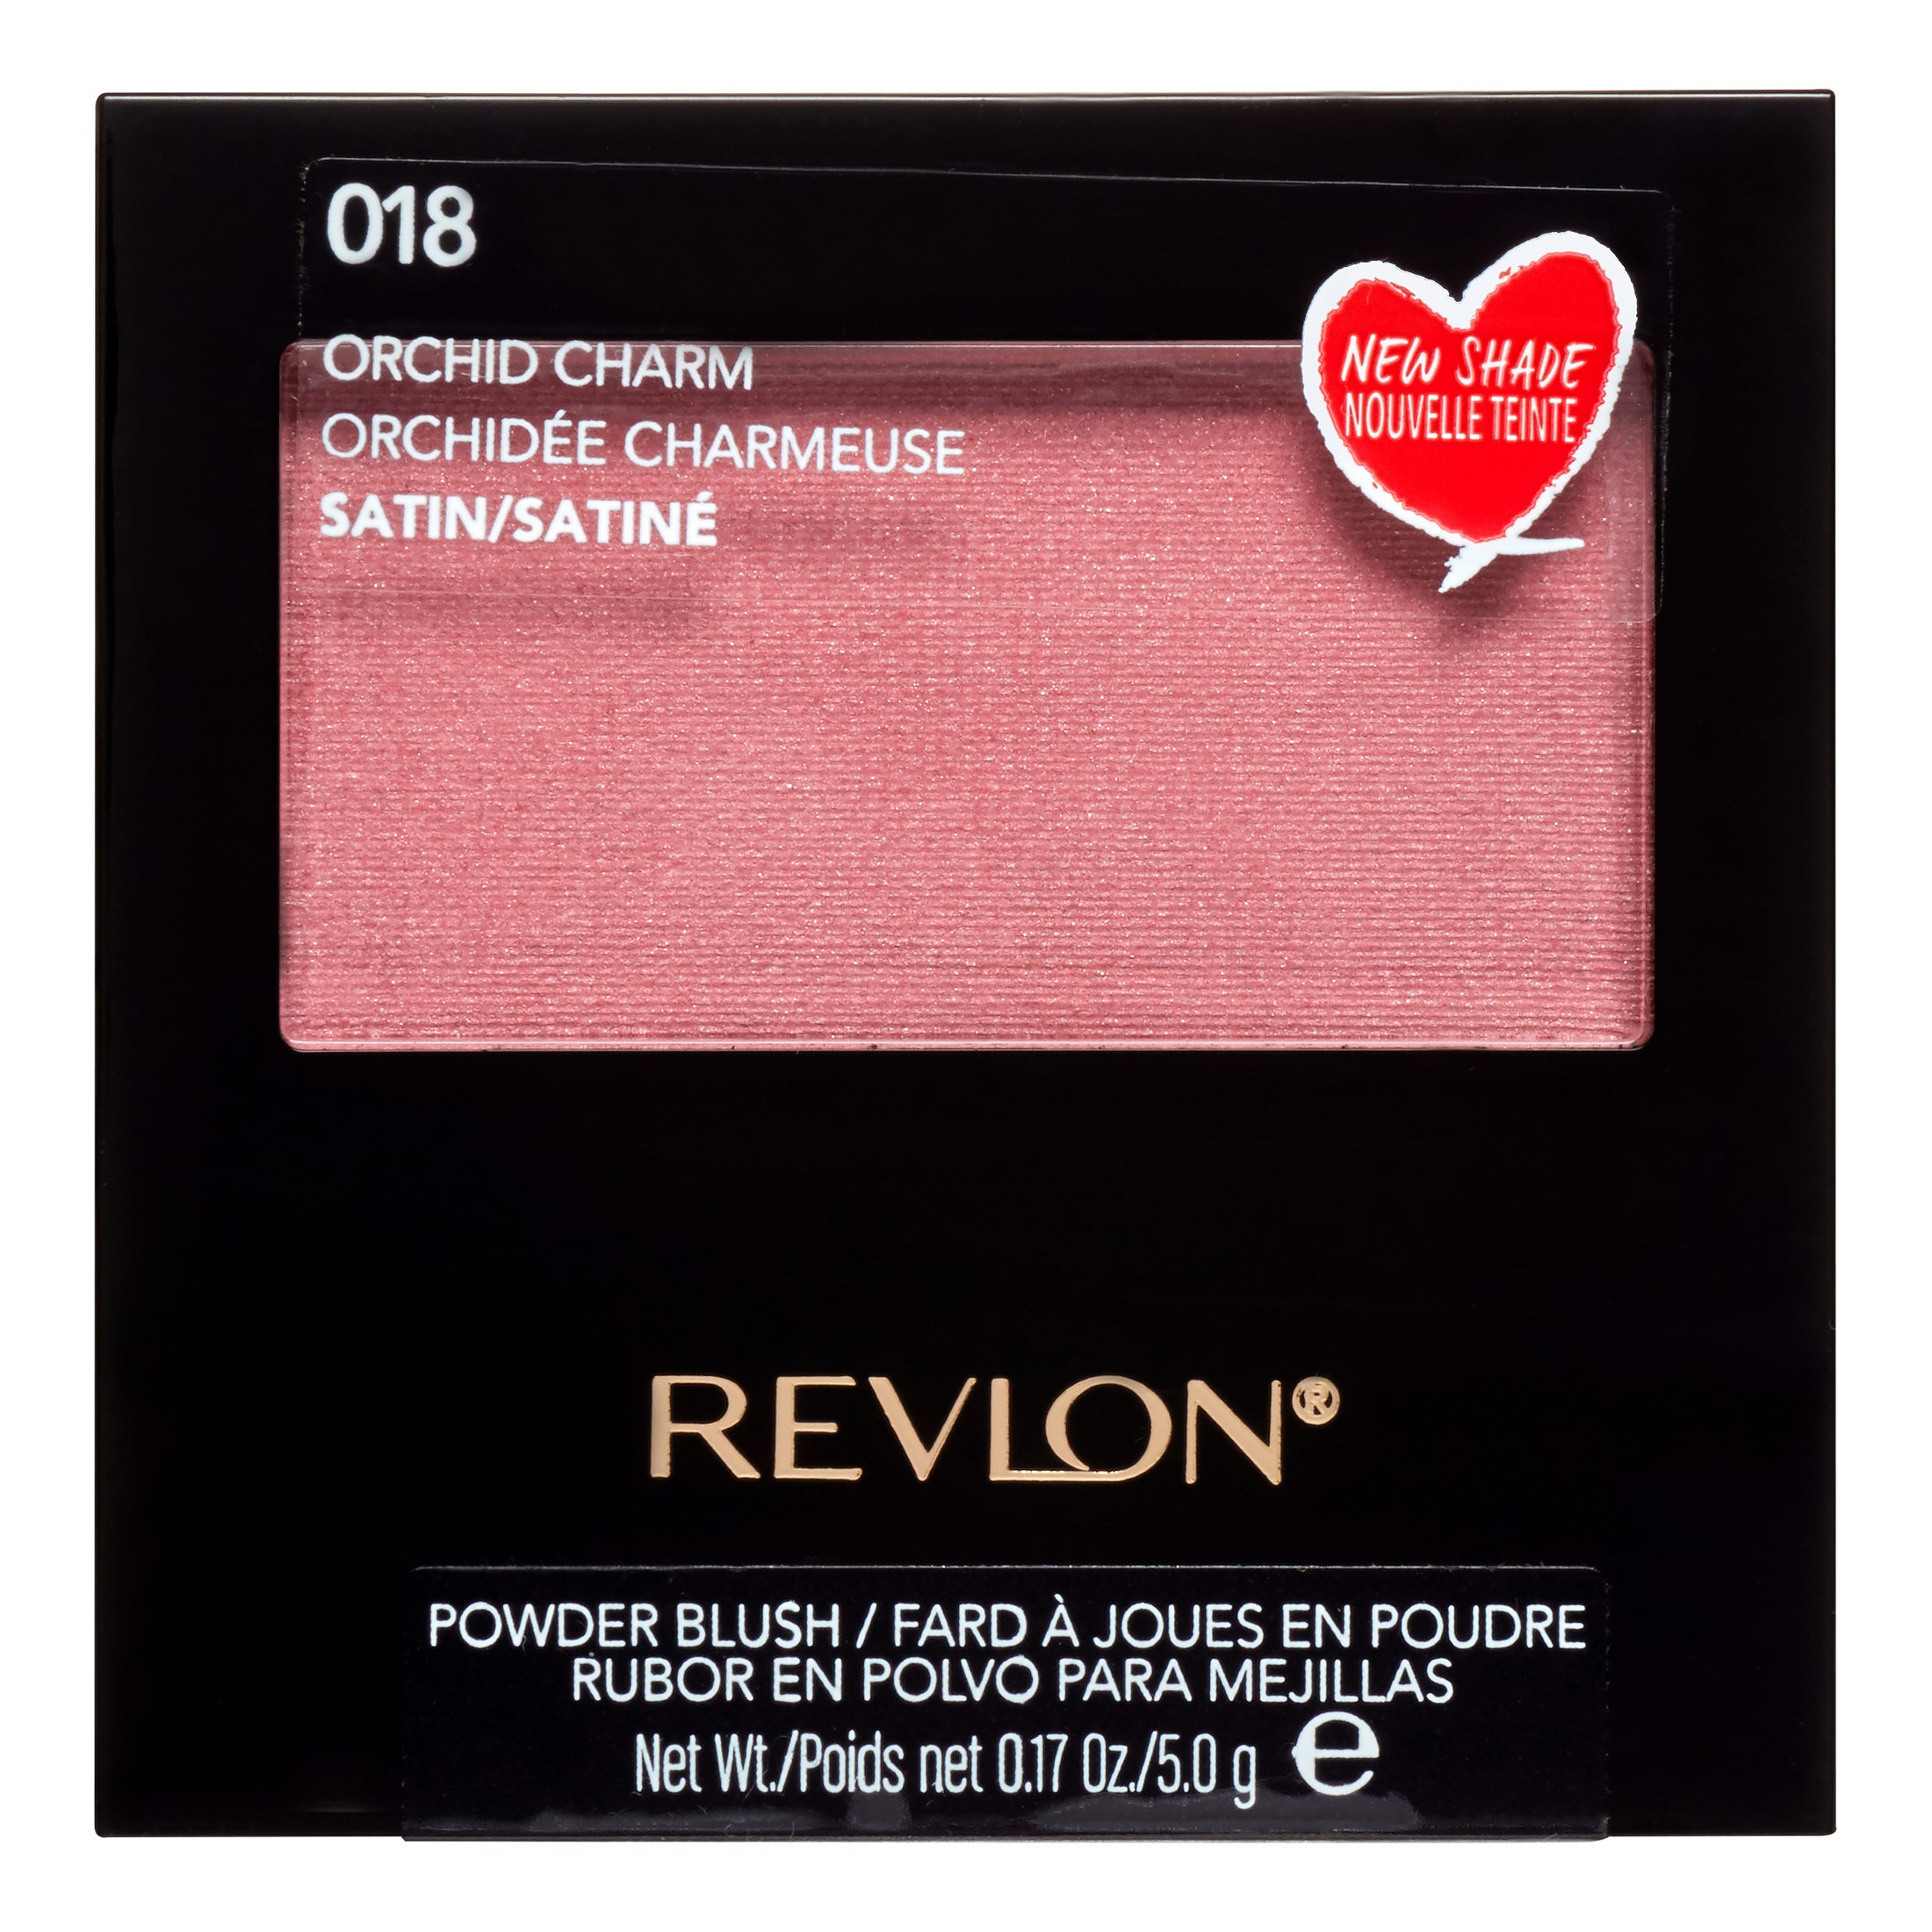 Revlon Powder Blush, 018 Orchid Charm, 0.17 Oz